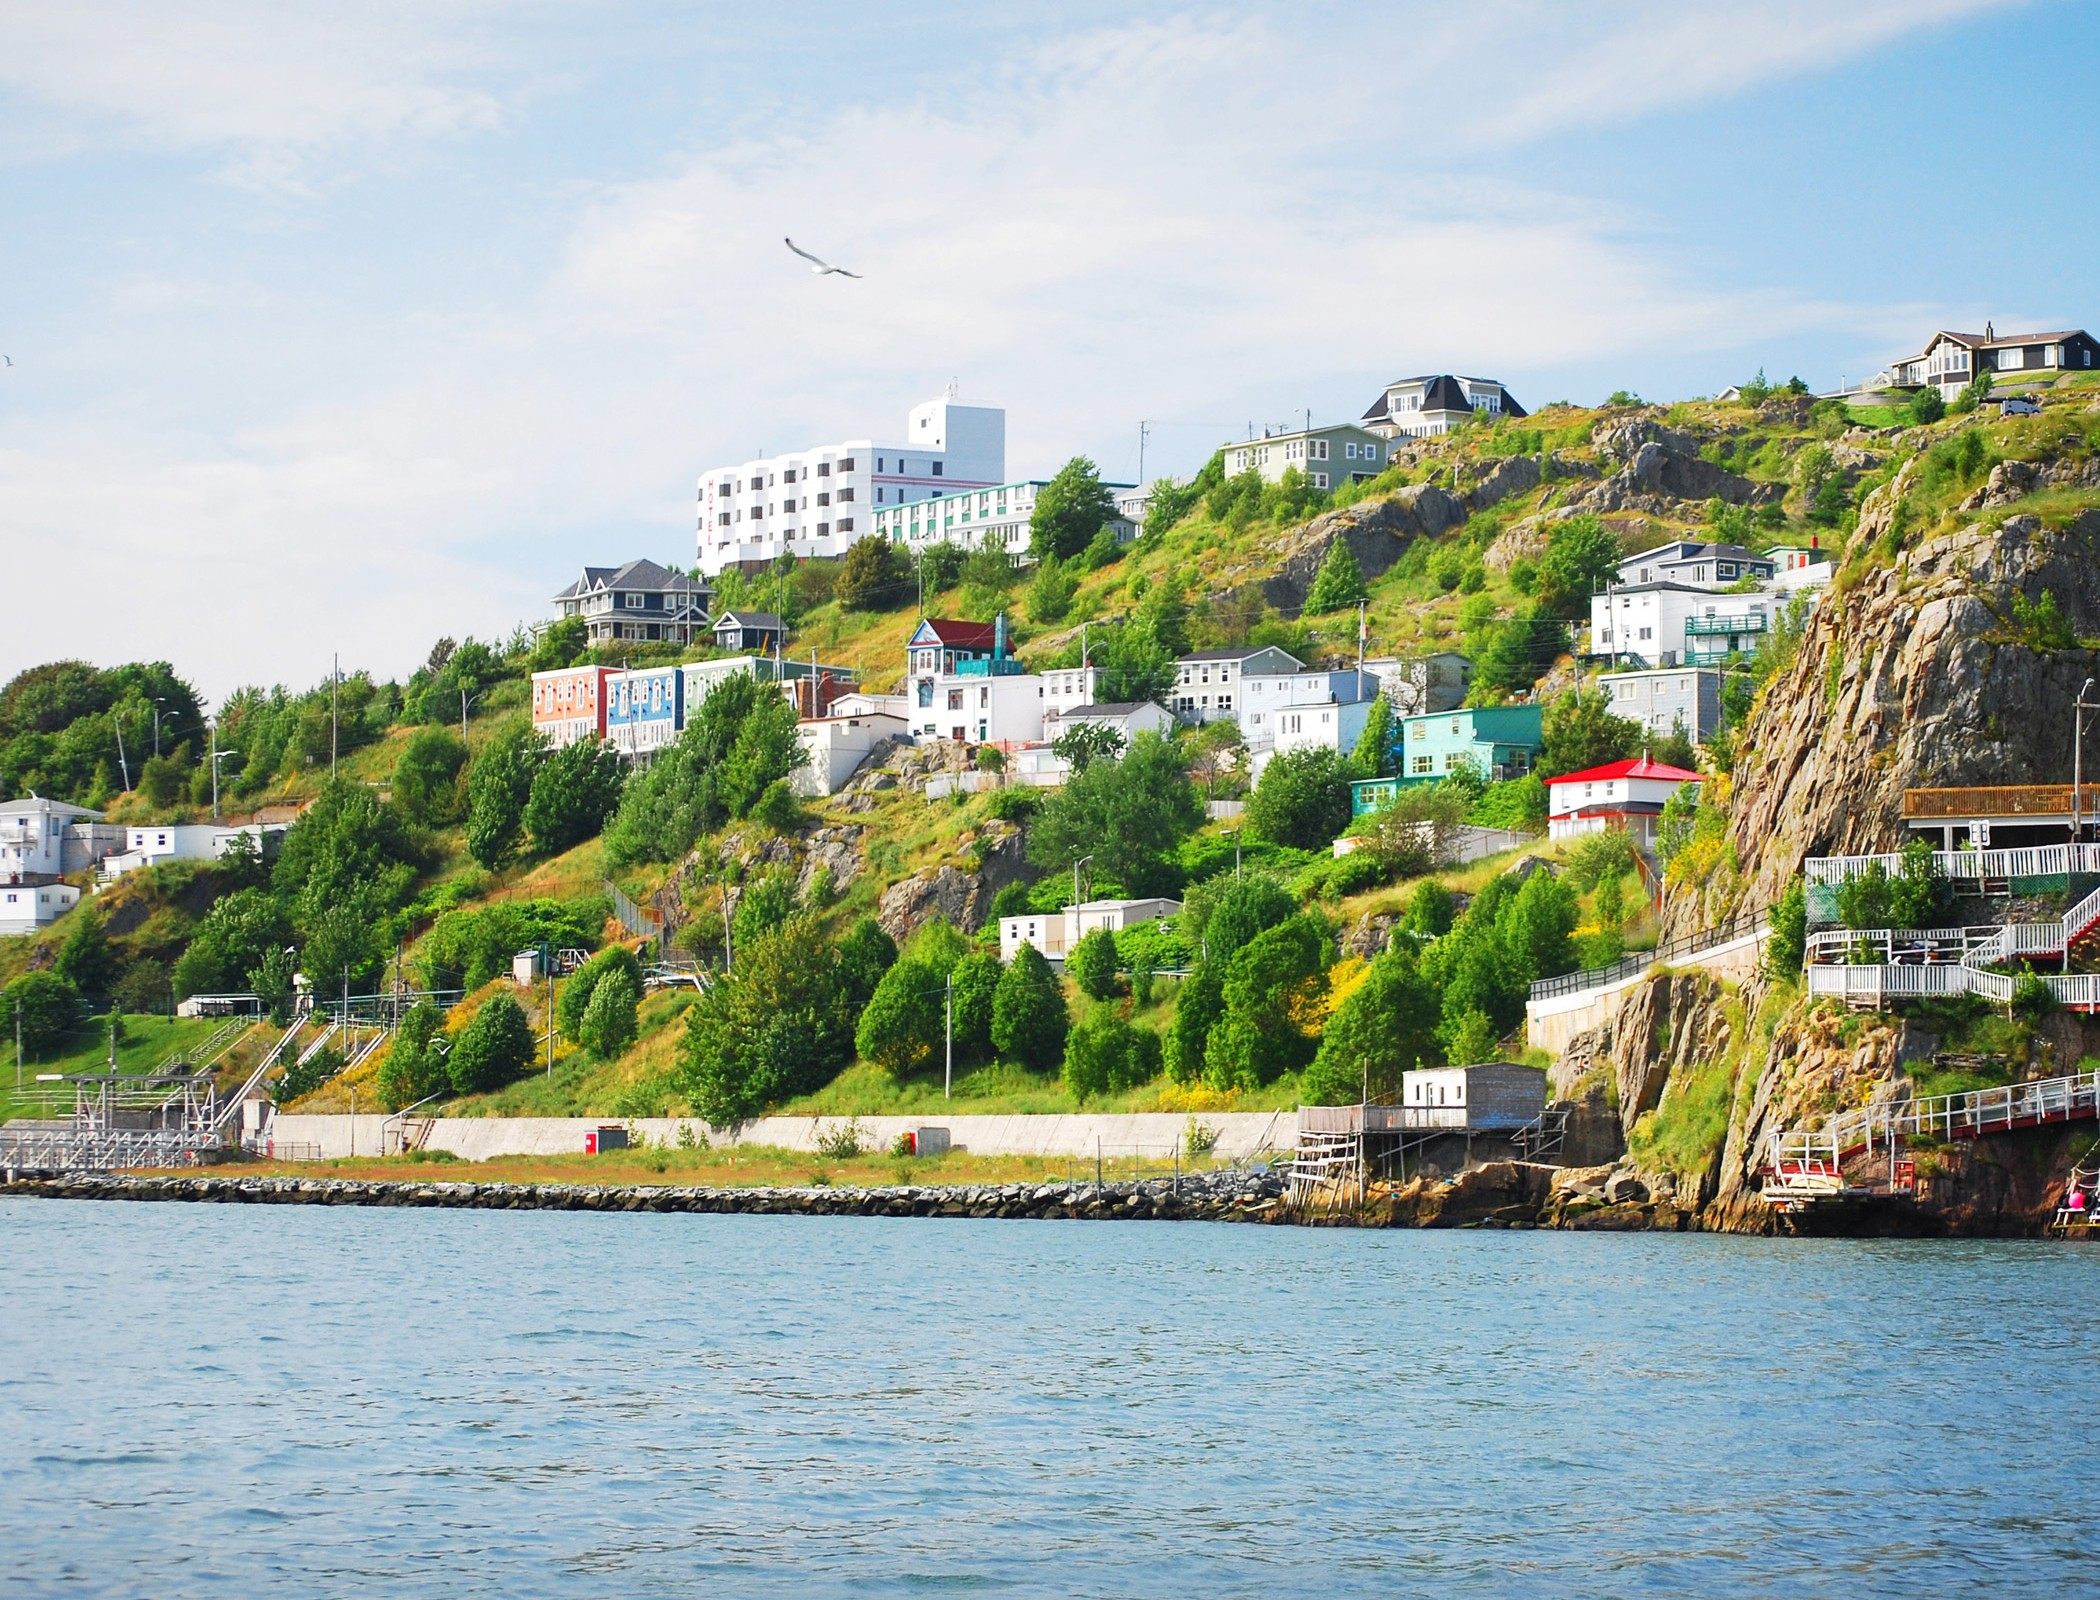 an overlooking shot of st. john's houses from the water's edge